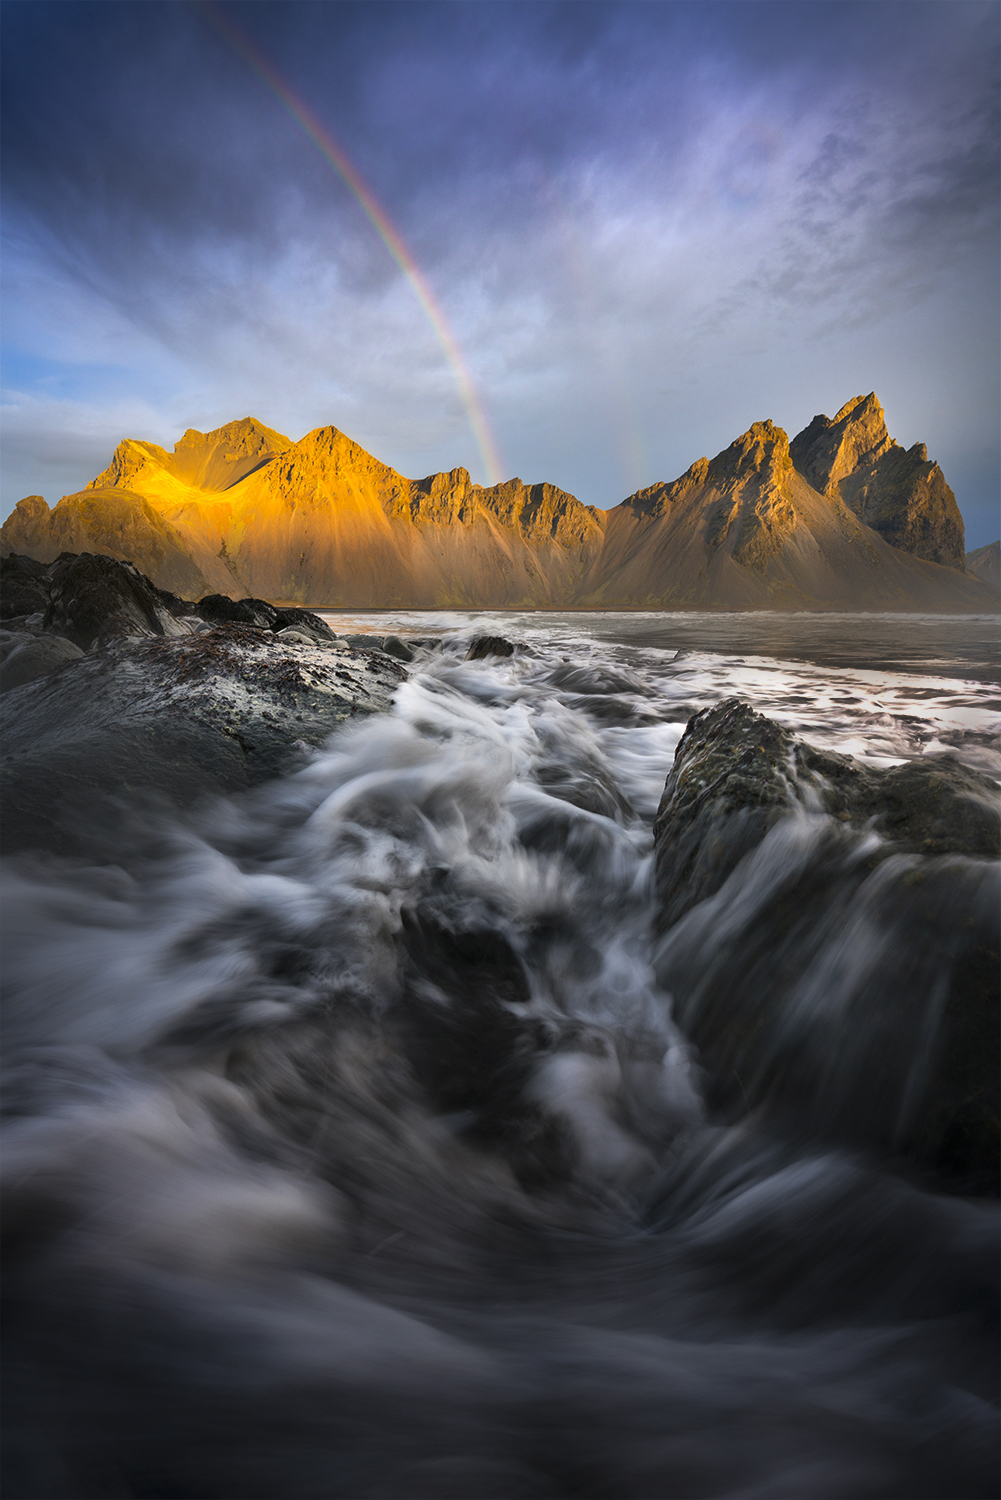 Rainbow over Vestrahorn mountain, Iceland